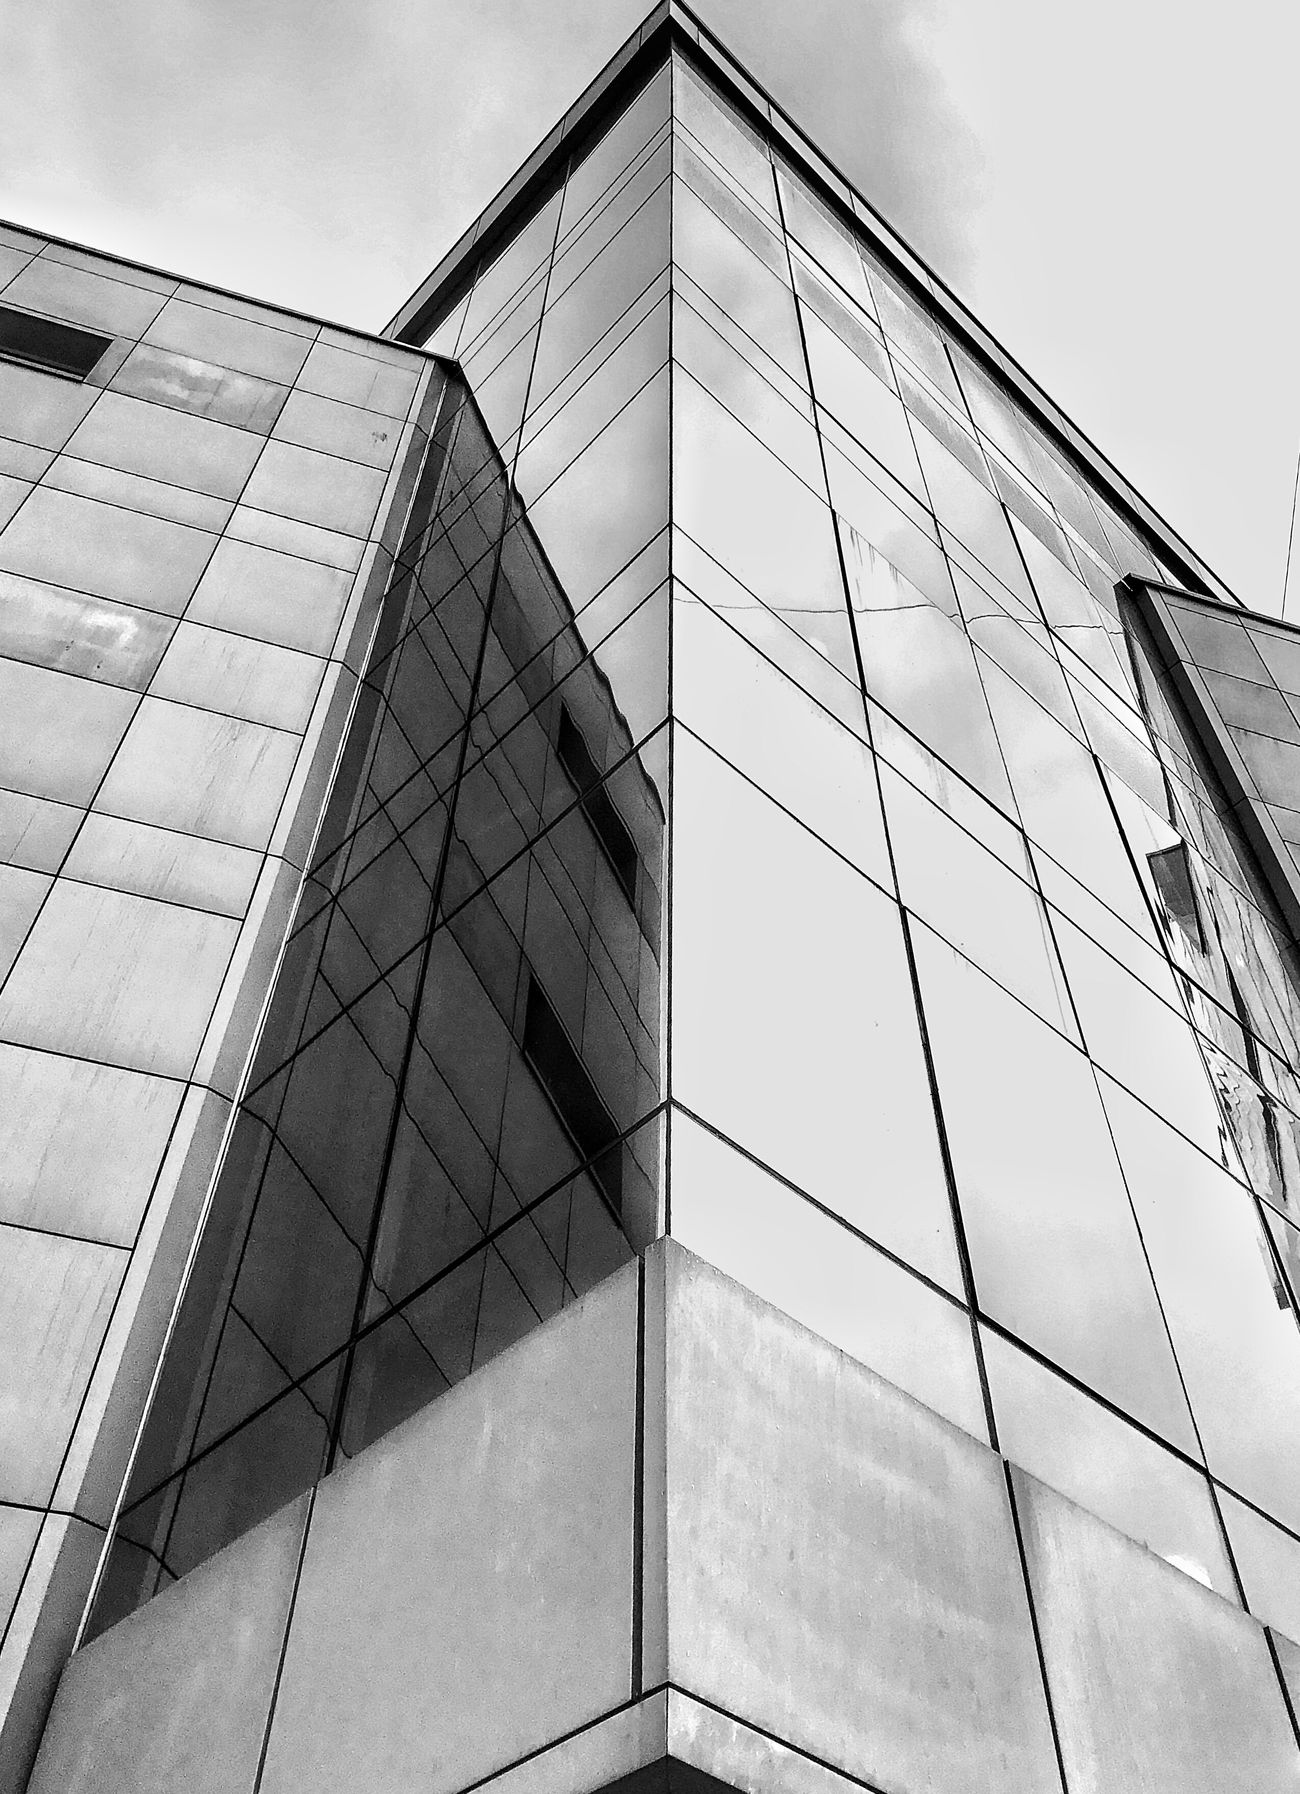 Low Angle View Architecture Building Exterior Sky Built Structure Reflection No People Modern Day Outdoors липецк Lipetsk